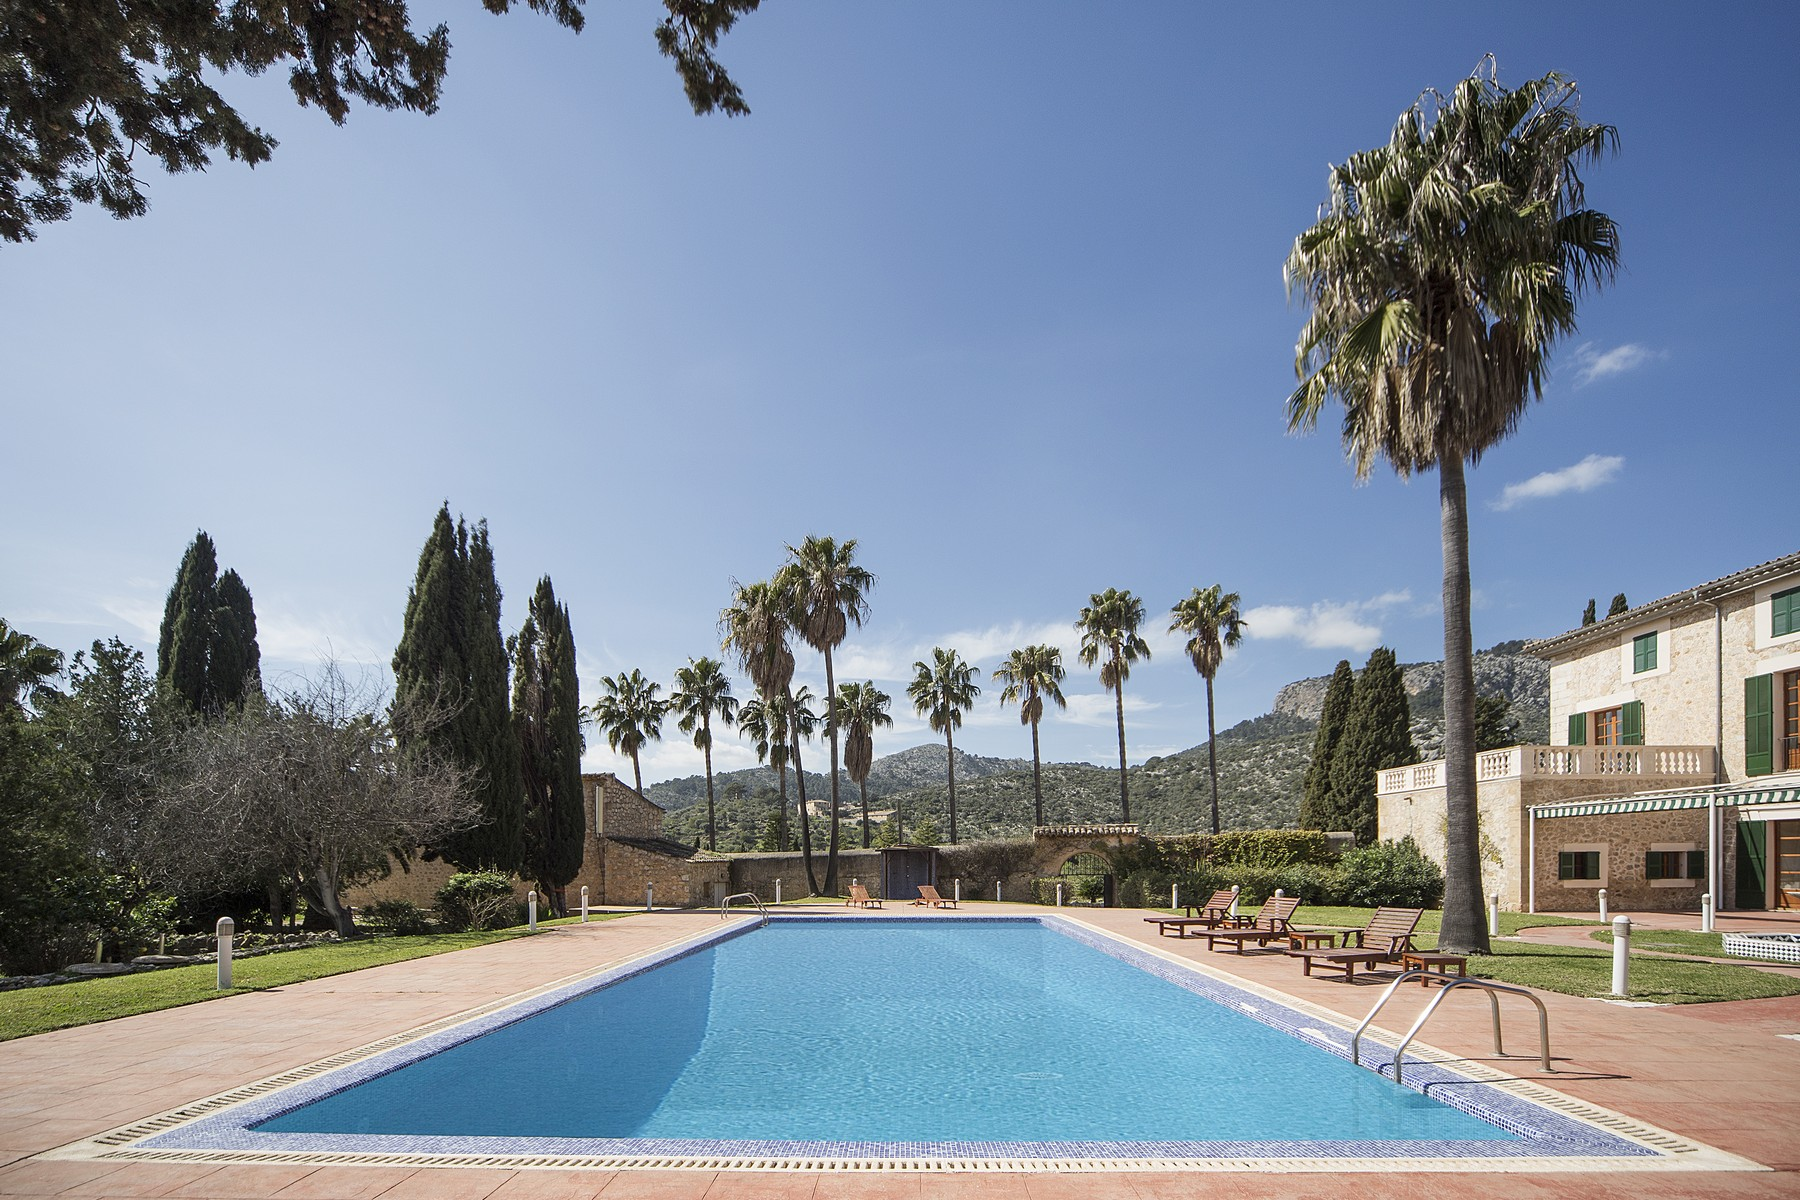 Single Family Home for Sale at Historic Country Estate to refurbish, Valldemossa Valldemossa, Mallorca, 07170 Spain